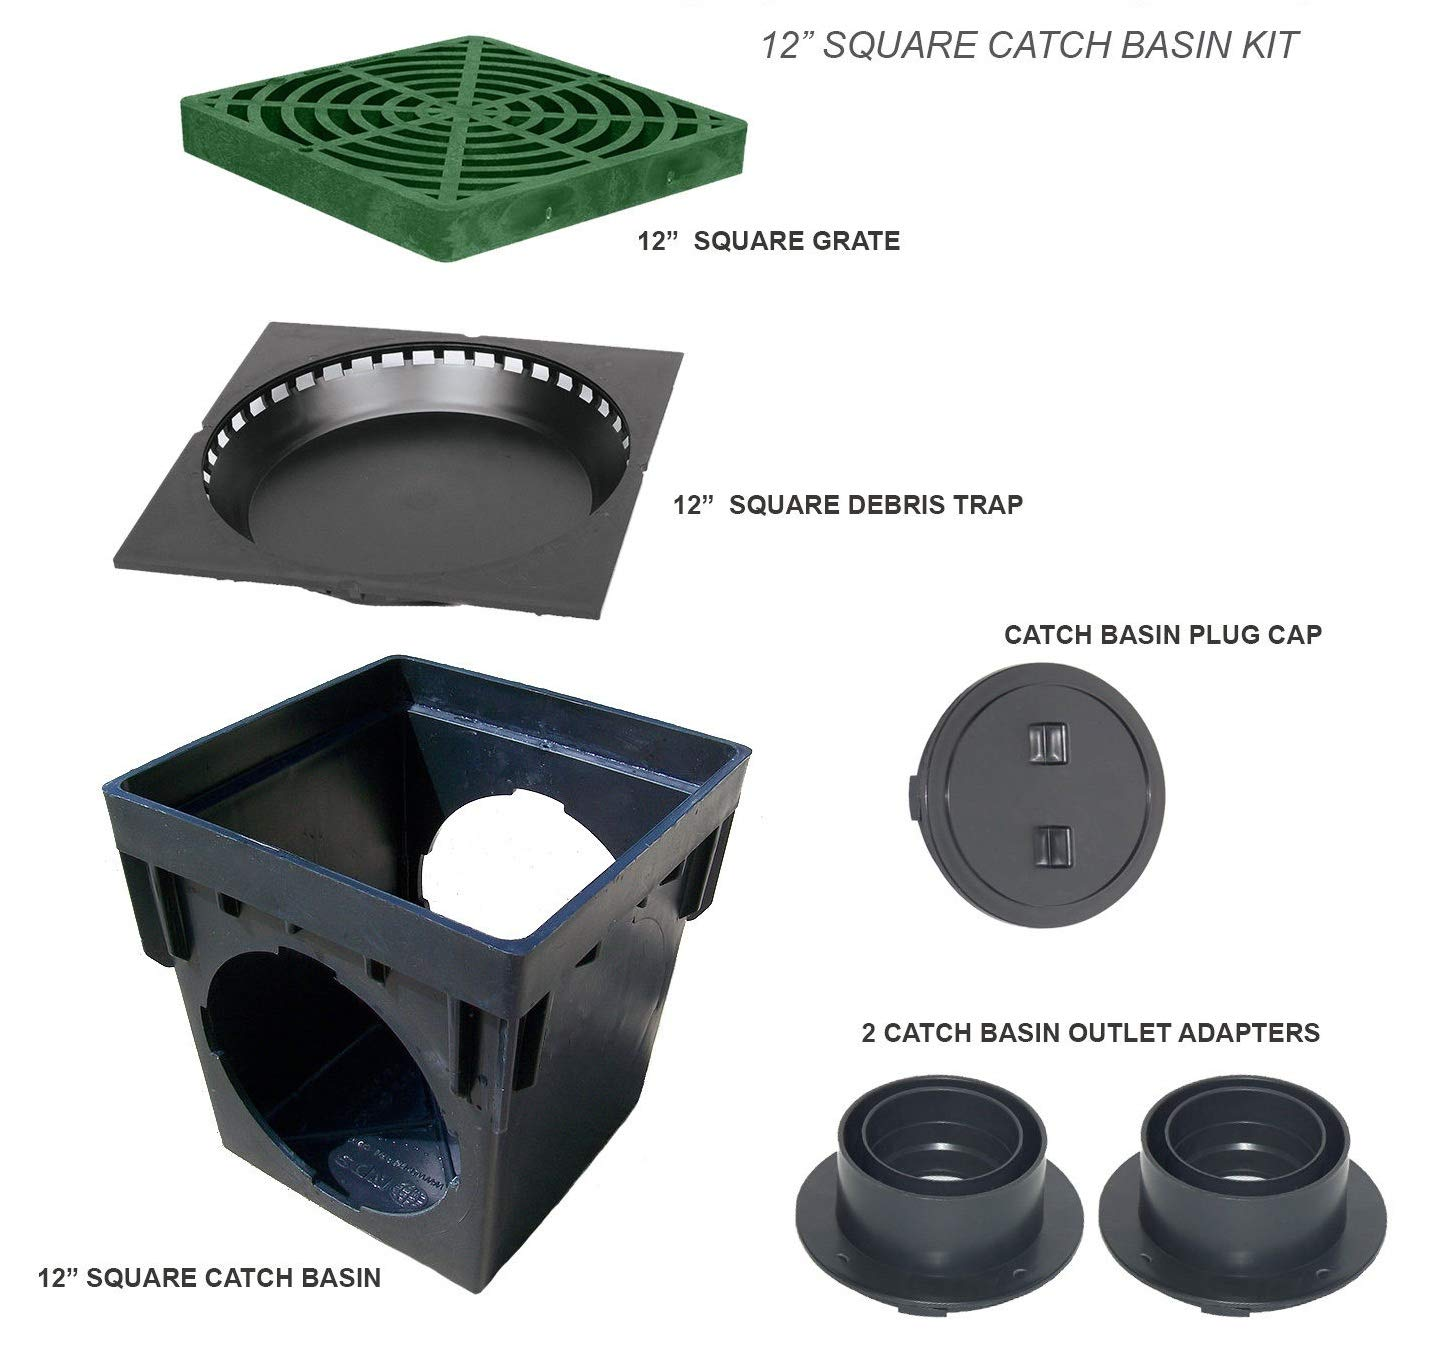 Seleq Plastic Square Drain Catch Box 12'' with Green Grate